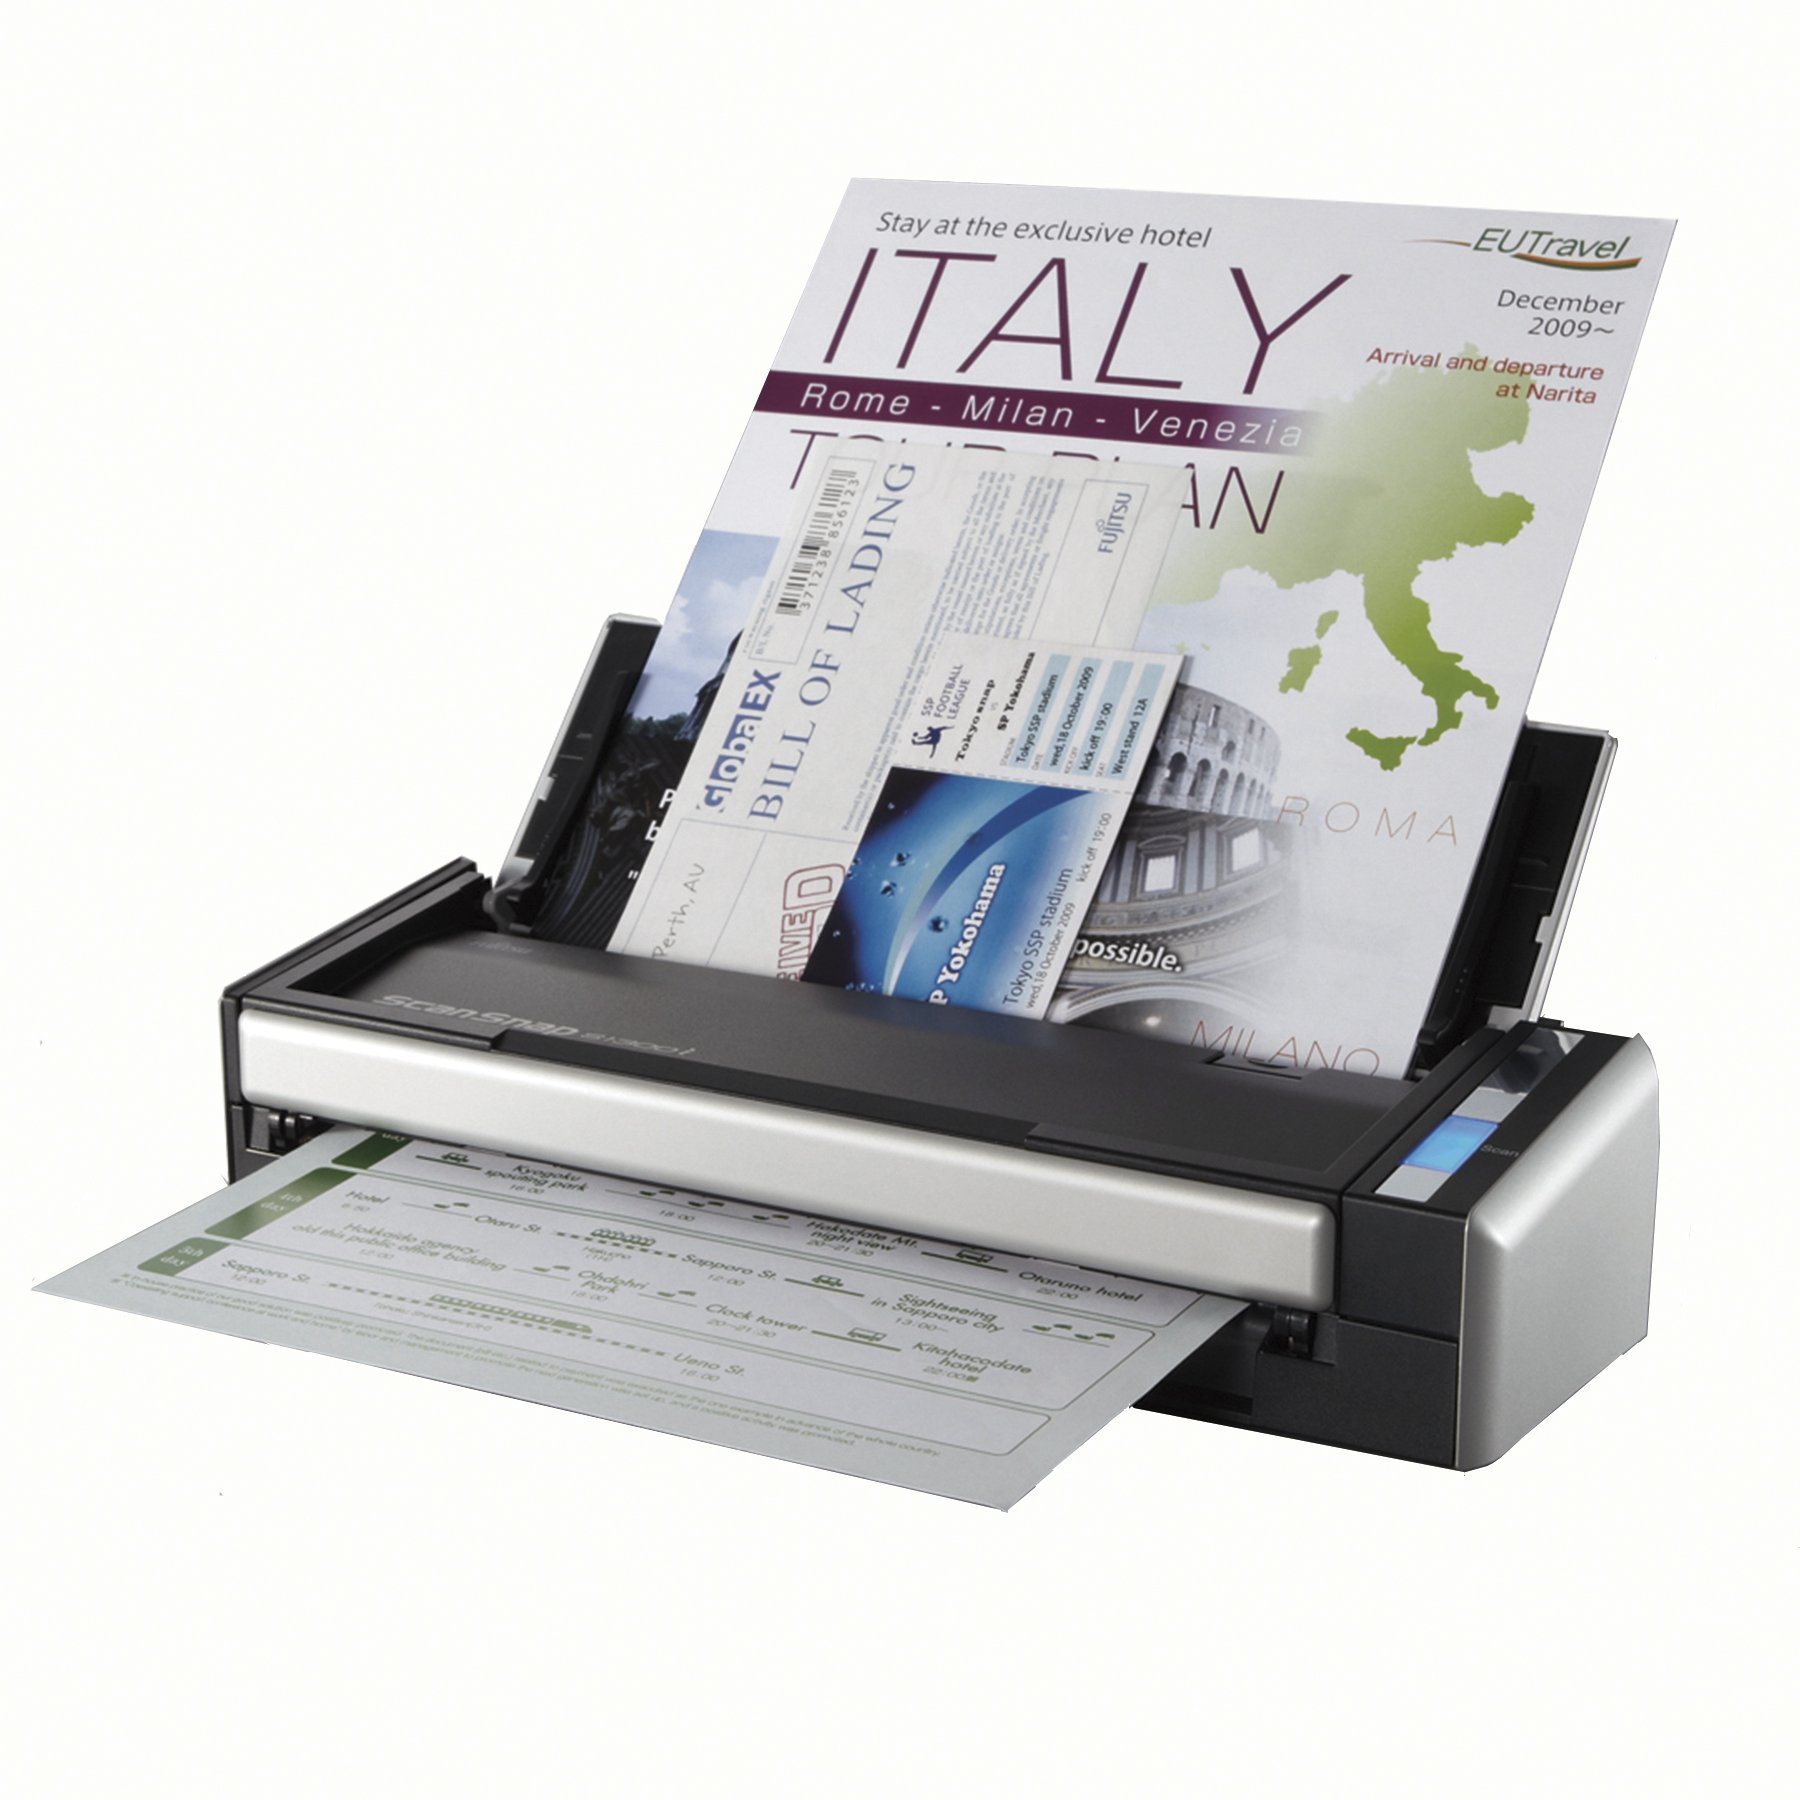 Fujitsu ScanSnap S1300i Portable Color Duplex Document Scanner for Mac and PC by Fujitsu